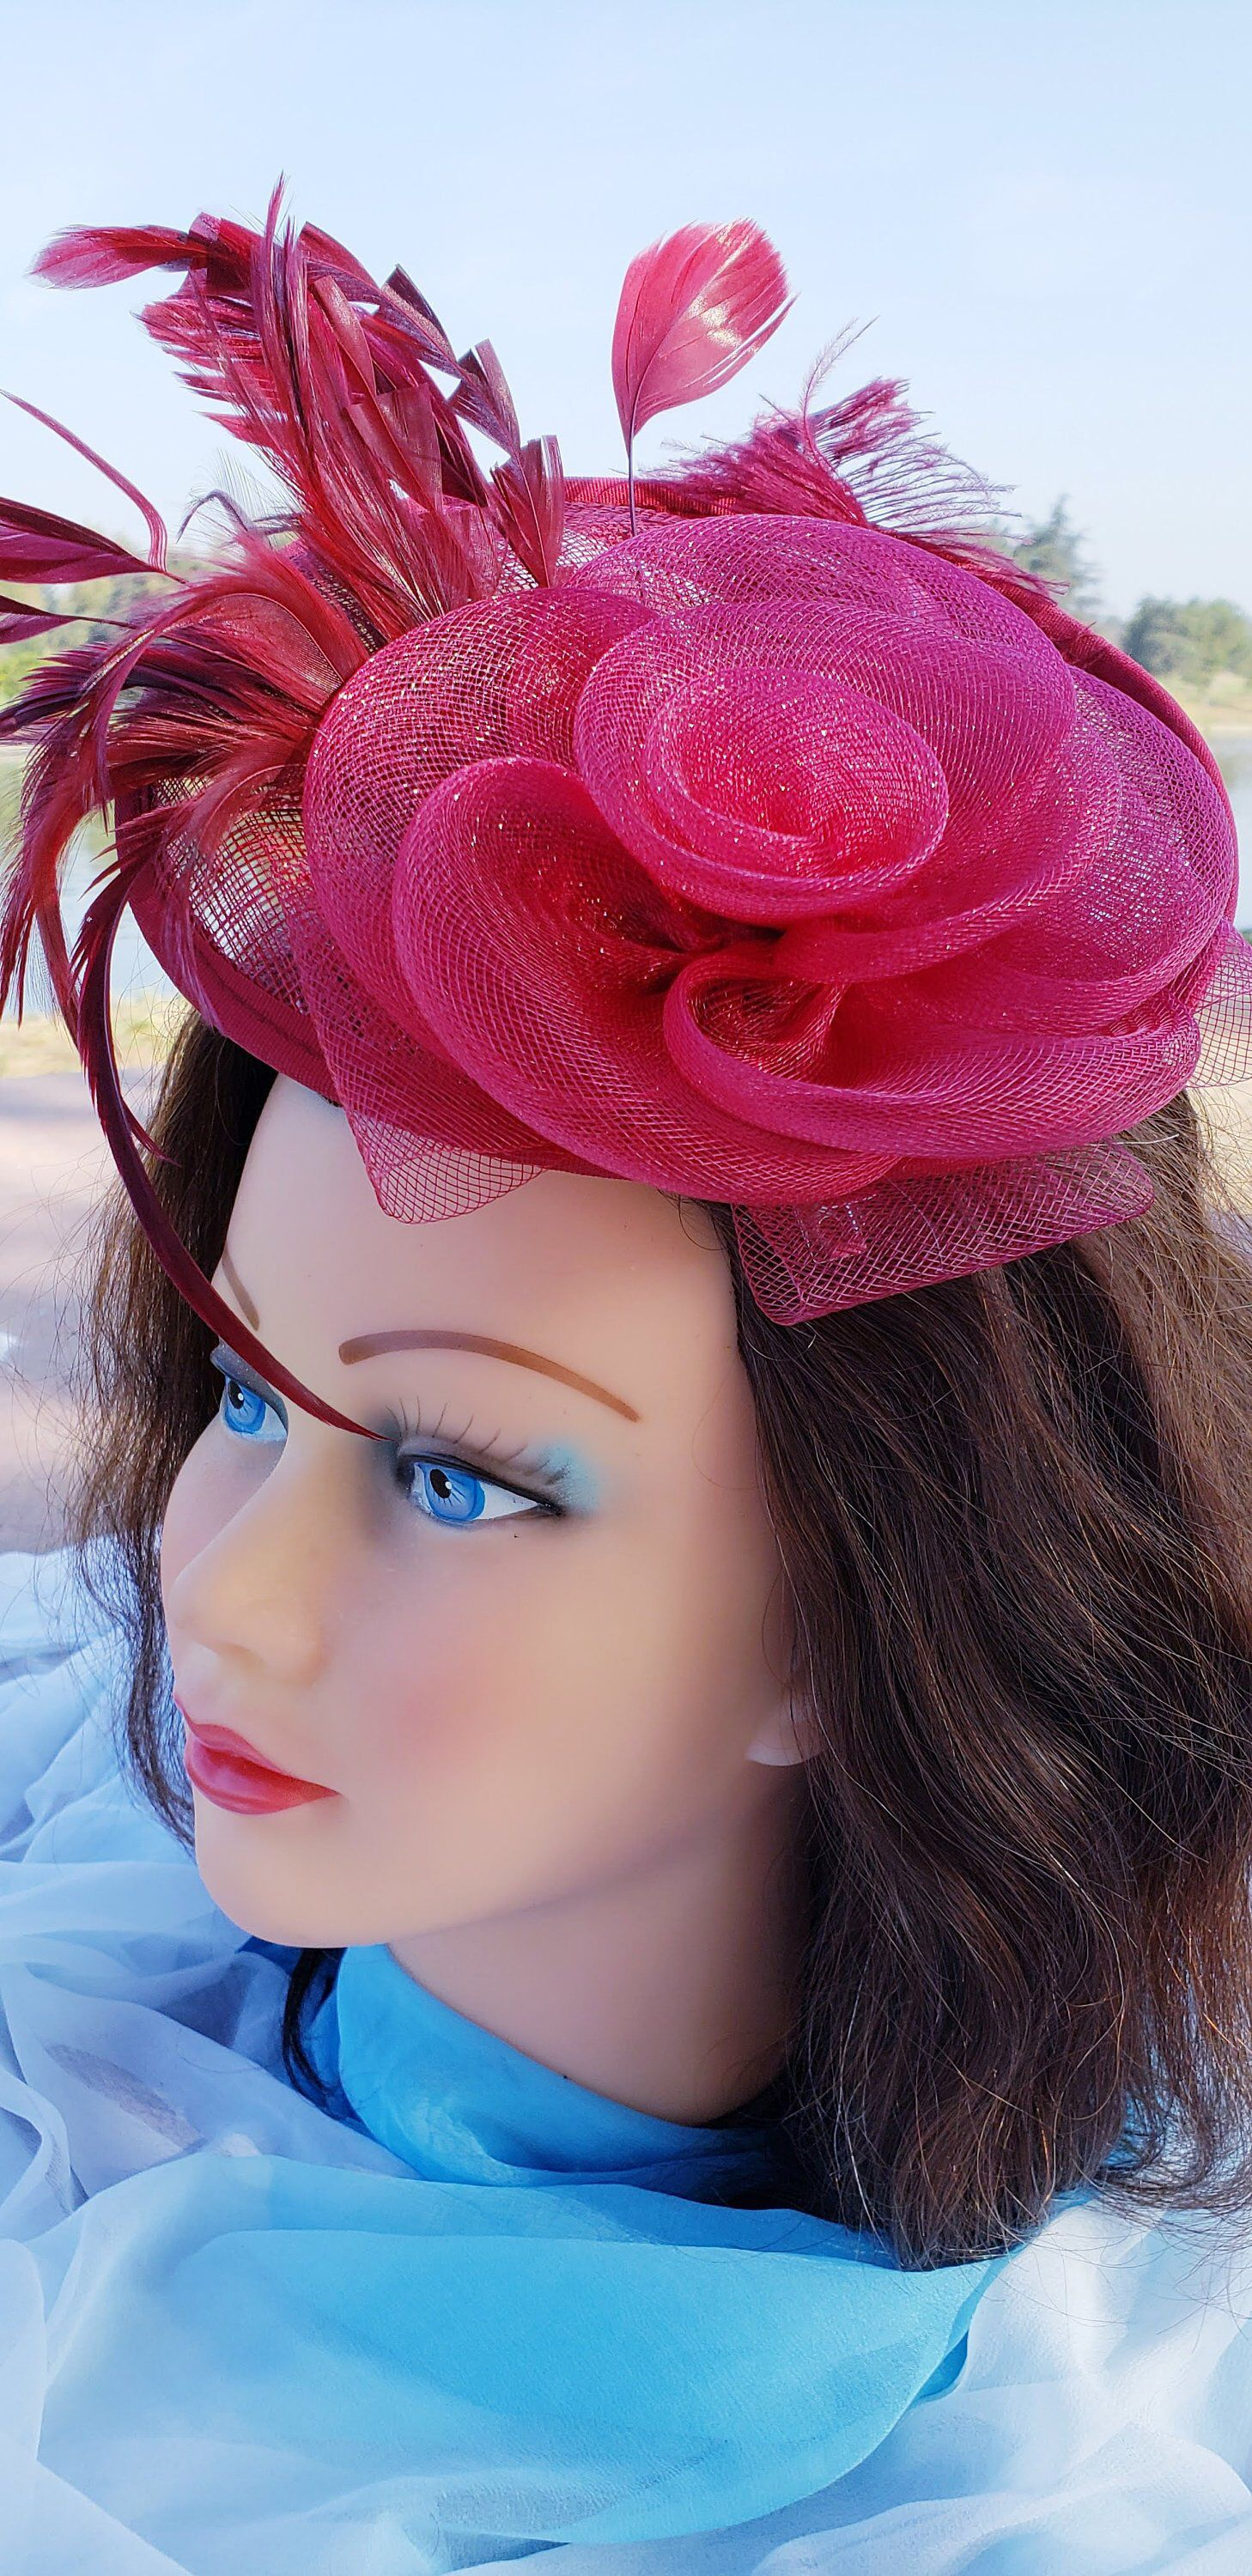 9f7d7c238504d Red Wine Sinamay Fascinator Derby Race Bridal Church Hat. Wedding Tea Party  Mini Hat.Costume Feather Hair Clip Head Accessory.Headpiece in 2018